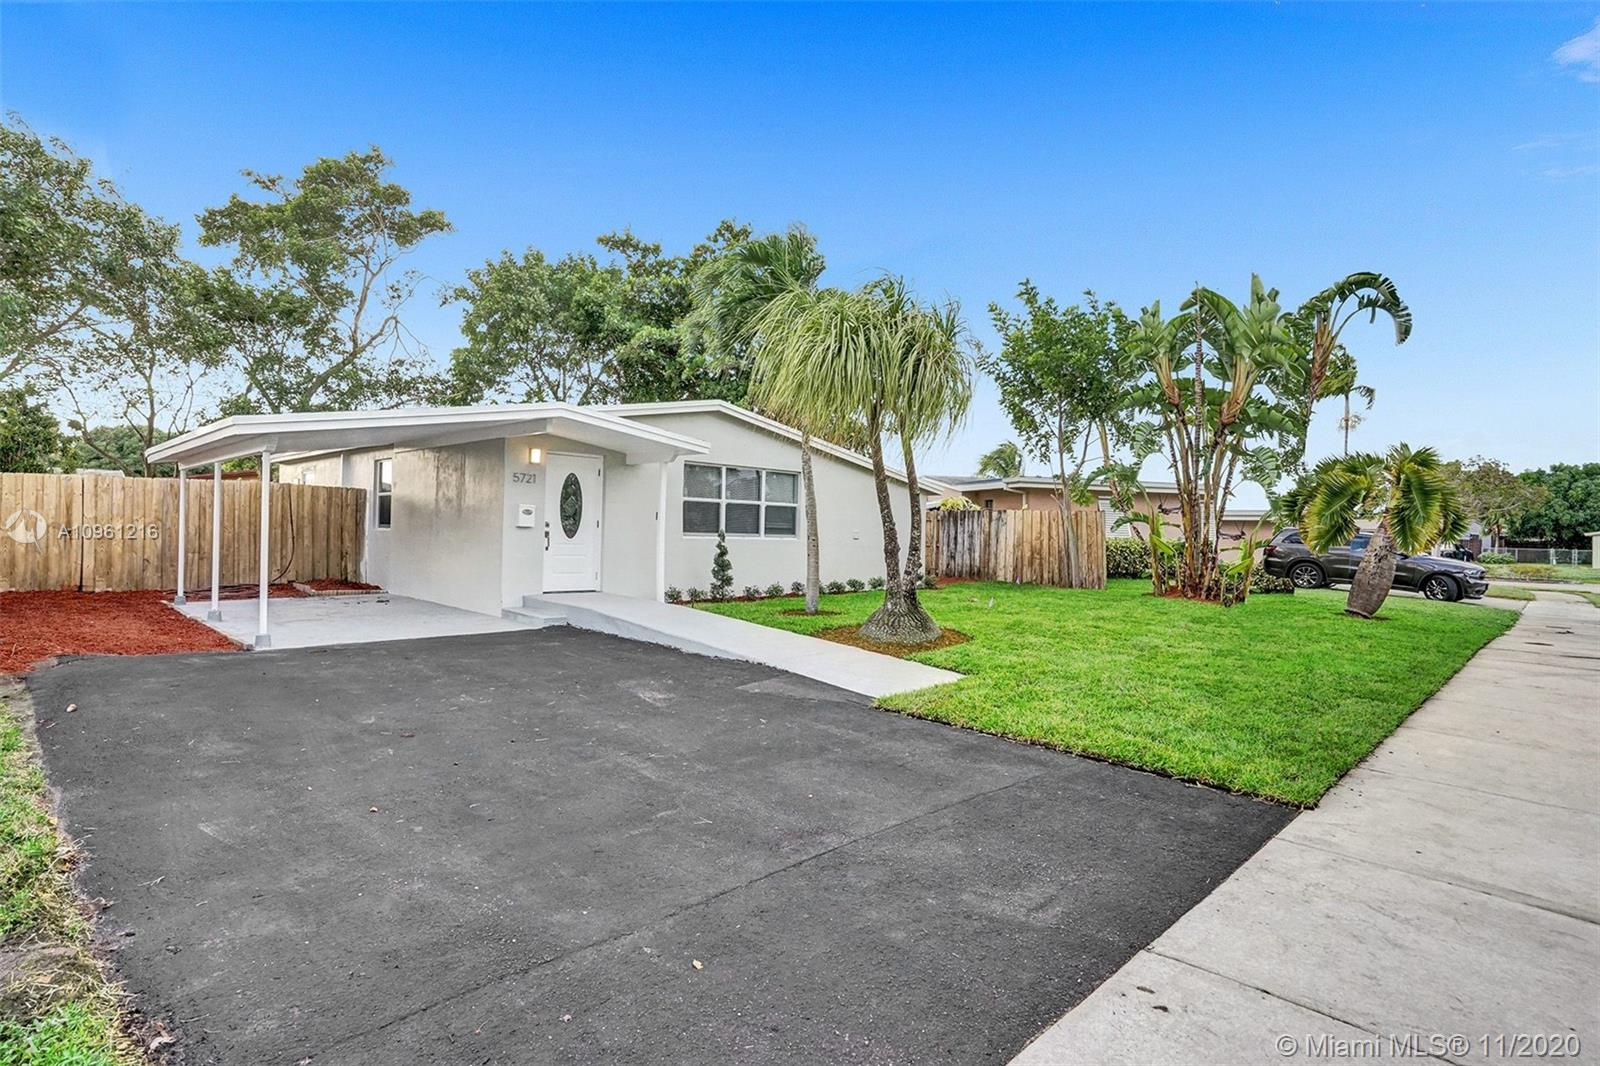 BEAUTIFULLY FULLY REMODELED 3 BEDROOM 2 BATHROOM HOME IN THE HEART OF OAKLAND PARK! PERFECT TURN-KEY HOME OR VACATION RENTAL OPPORTUNITY! HOME FEATURES ALL HURRICANE IMPACT WINDOWS AND DOORS, 2018 SHINGLE ROOF, 2010 A/C UNIT, NEW ELECTRIC TANKLESS WATER HEATER, NEW BATHROOMS, NEW IRRIGATION SYSTEMS WITH NEW PLANTS, NEW CUSTOM KITCHEN WITH HIGH-END EUROPEAN CABINETS, BRAND NEW STAINLESS STEEL APPLIANCES, QUARTZ COUNTERTOP, RECESSED LIGHTING THROUGHOUT, VERY LARGE BACKYARD NICE FOR ENTERTAINMENT OR TO BUILD A POOL, SPACIOUS DRIVEWAY WITH CARPORT, FRESHLY PAINTED INSIDE/OUT, SHED IN THE BACKYARD CONVEY... MINUTES FROM SCHOOLS, BEACH, SHOPPING PLAZAS, ETC... HURRY THIS WONT LAST LONG!!